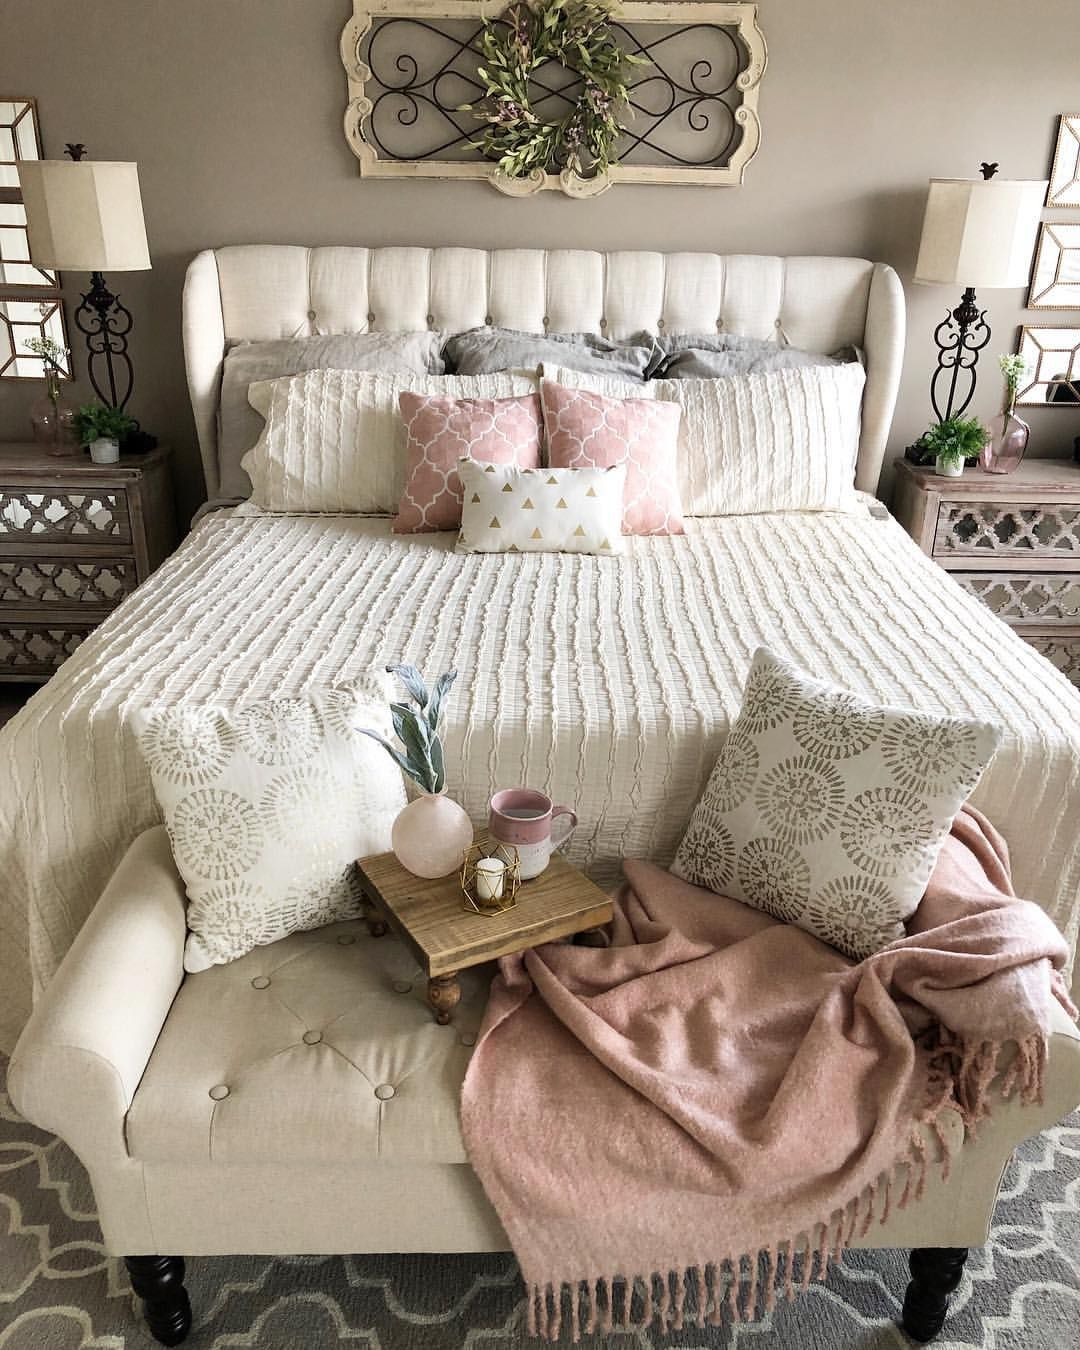 Blush Pink Accents In Master Bedroom For Spring Master Bedroom Makeover Pink Master Bedroom Bedroom Makeover